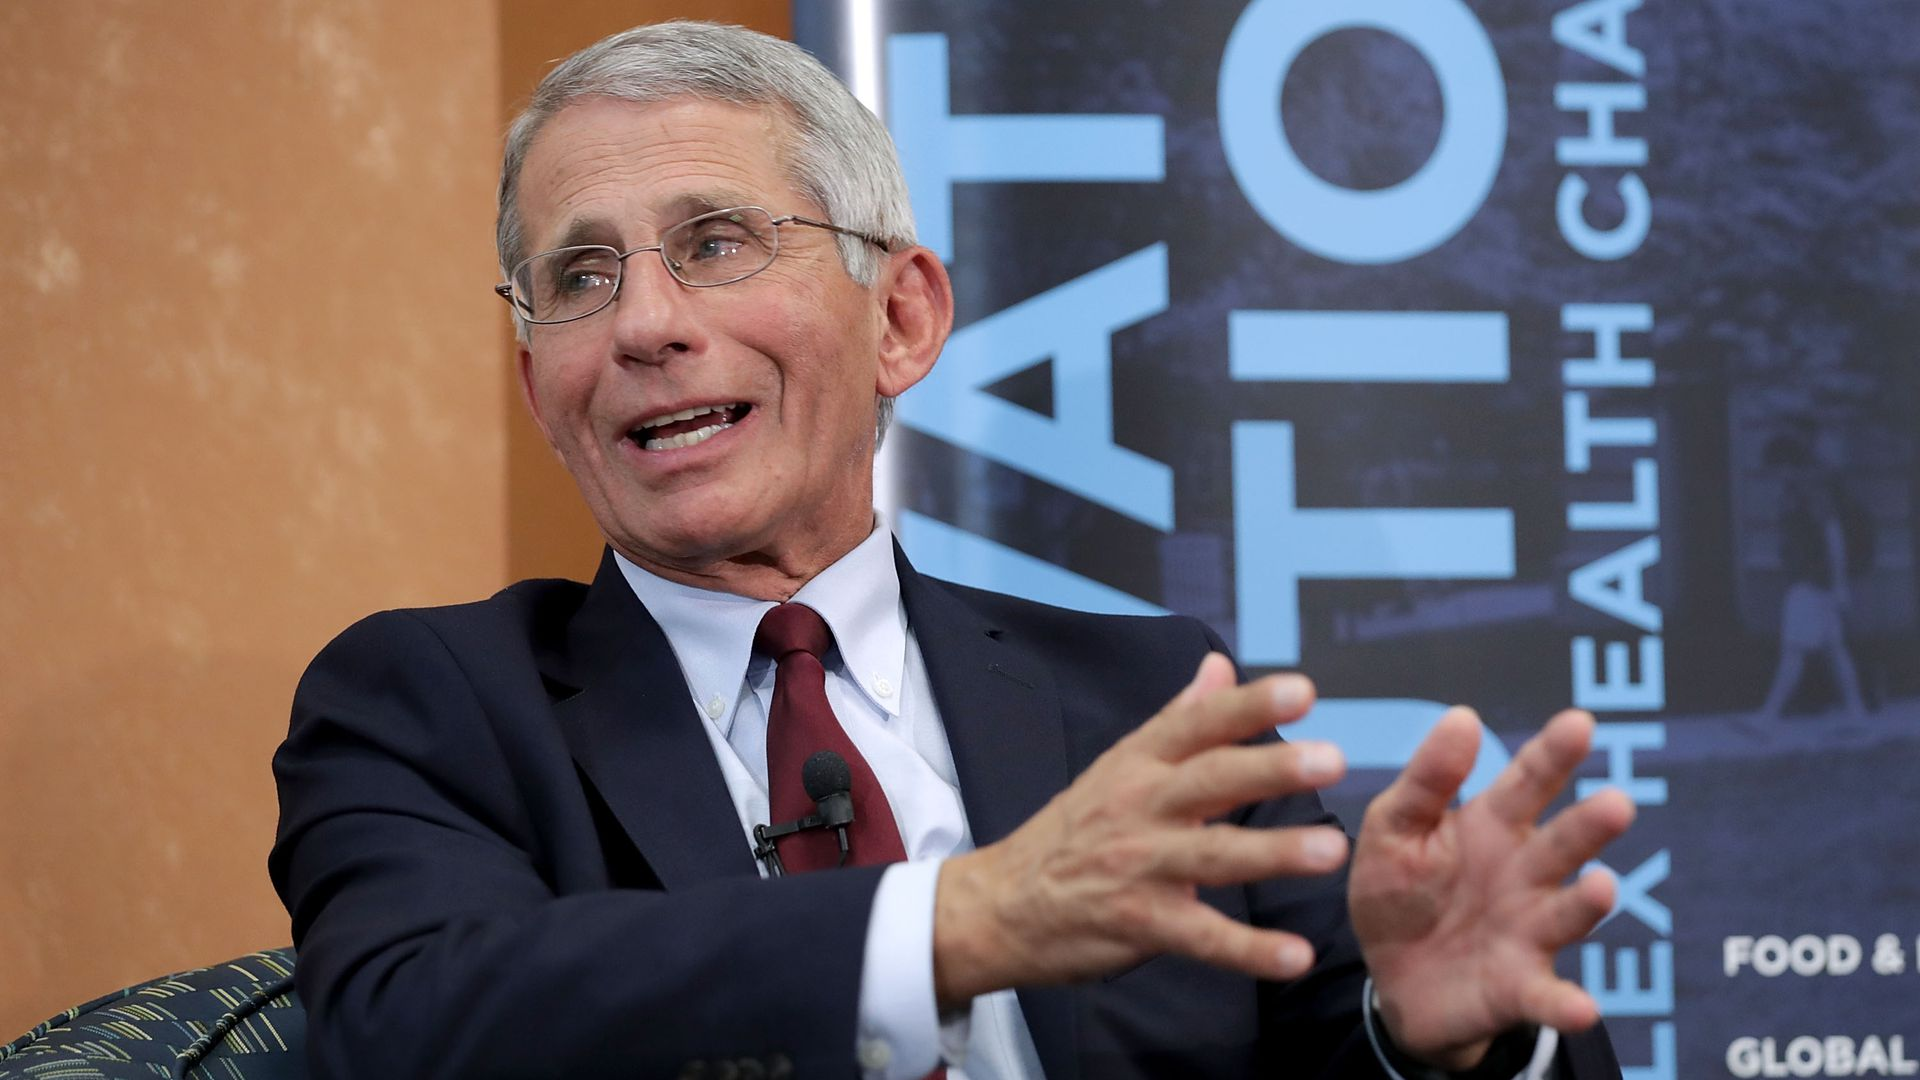 NIAID chief Anthony Fauci speaking at another panel, sitting down and gesticulating with his hands